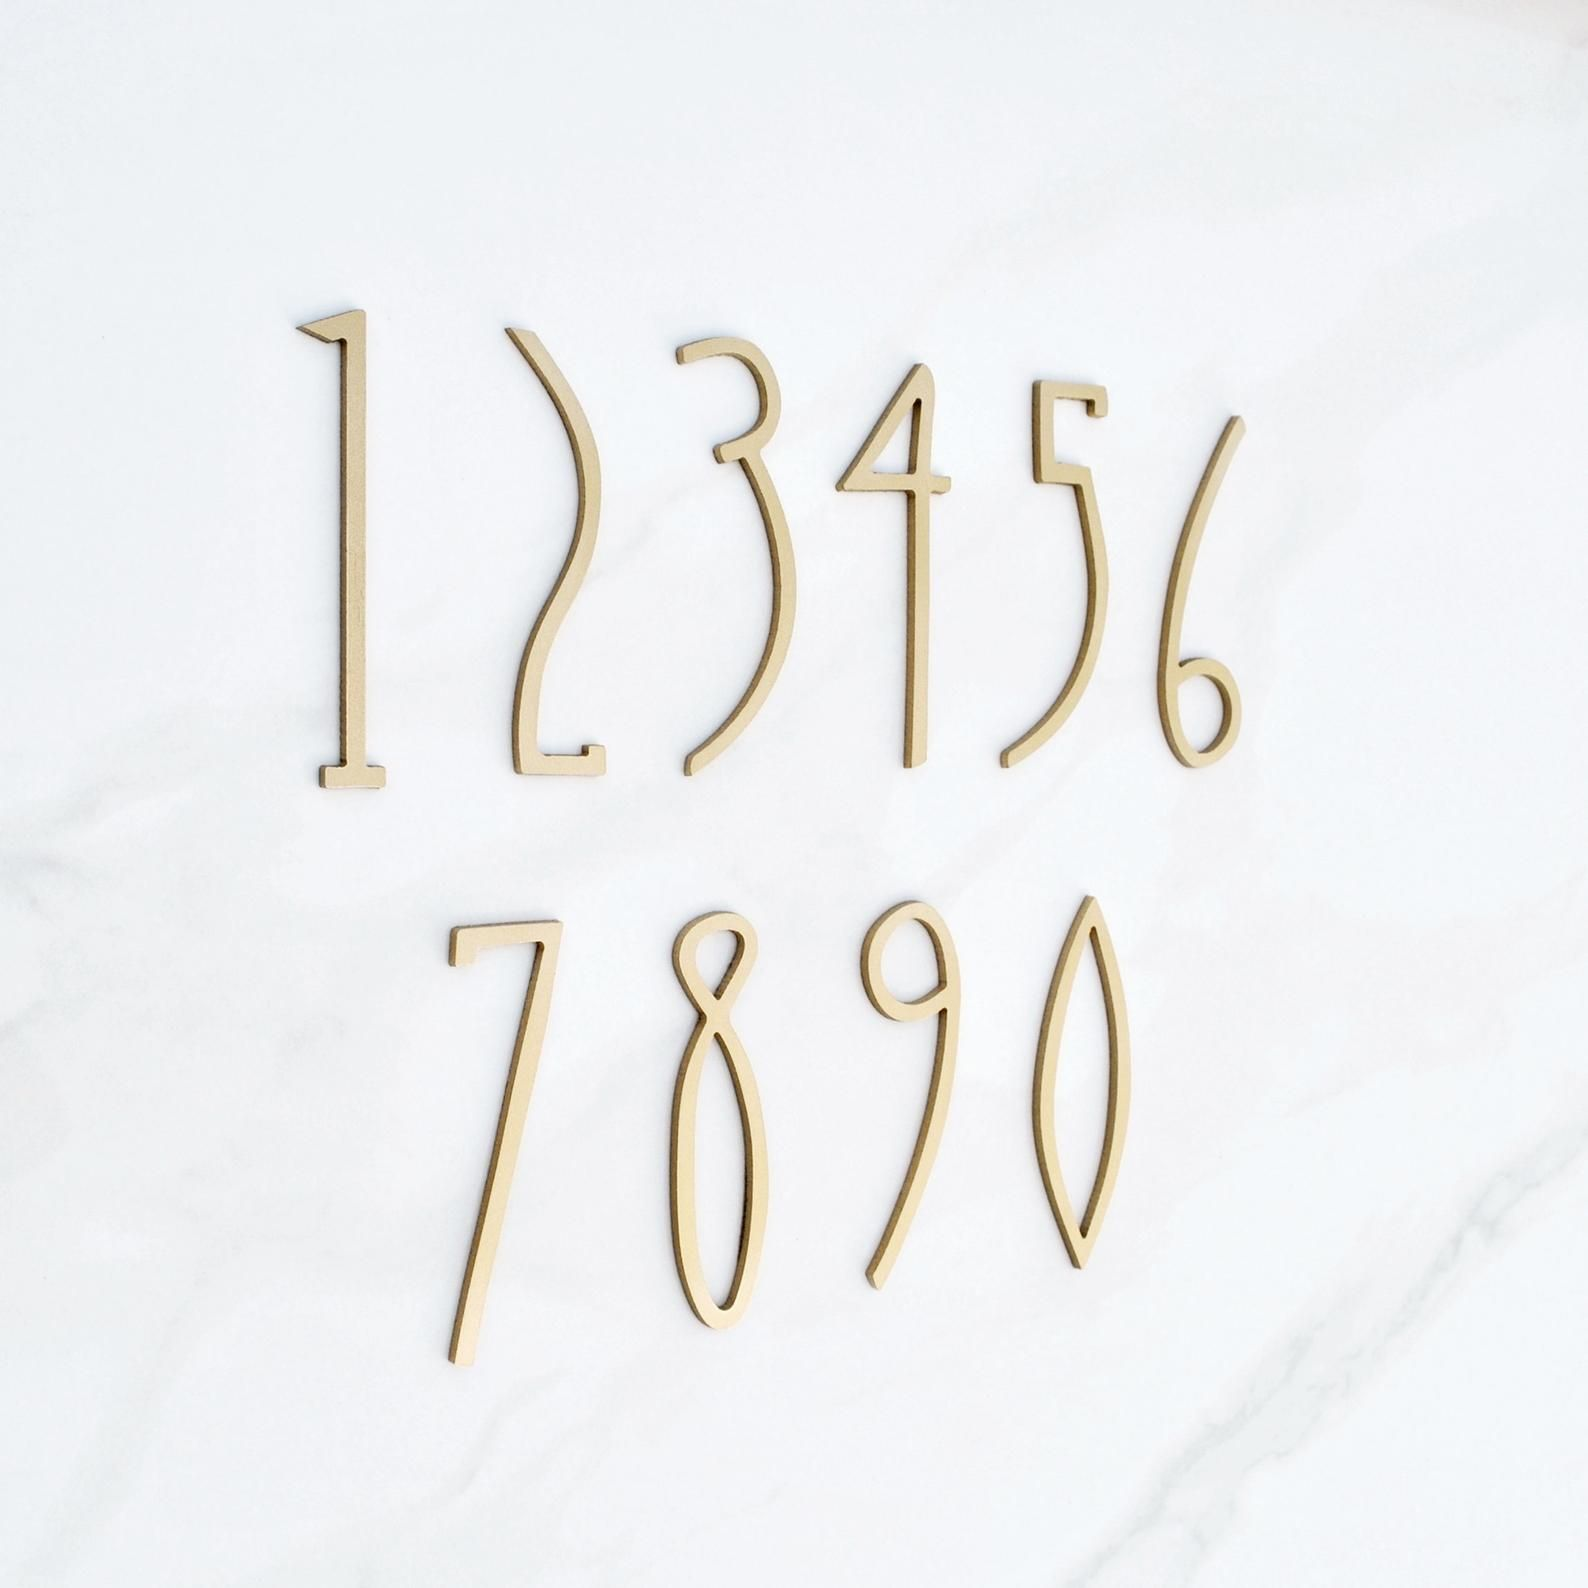 Art Deco House Numbers 4 Inch Gold Color Address Aluminium Antique Style Homedecoryale In 2020 House Numbers Art Deco Home Metal Numbers